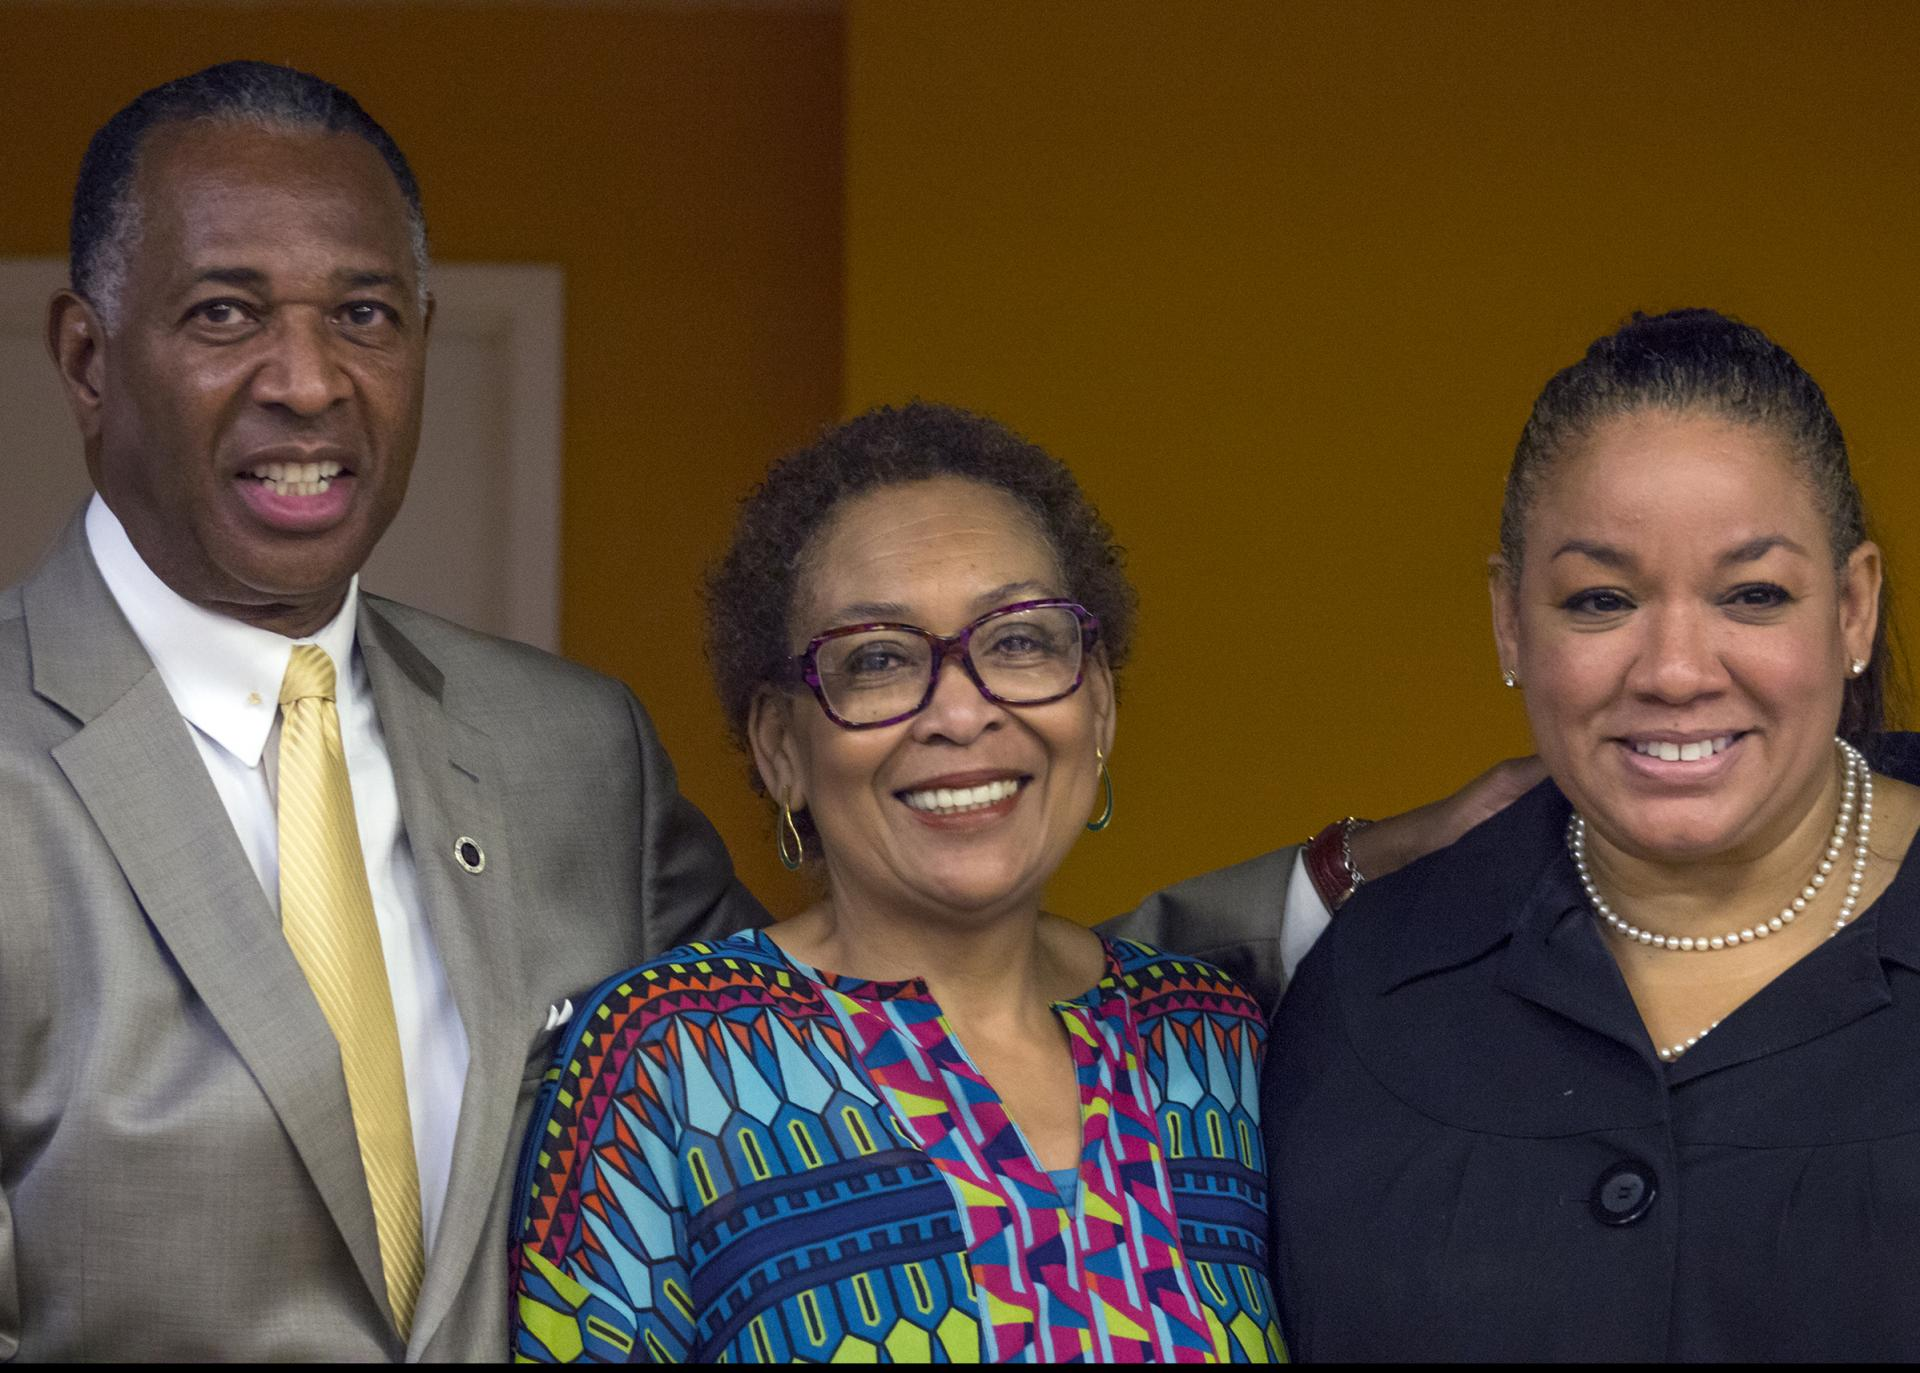 La-Verna Fountain (center) with Rev. Jacques DeGraff (left) and Kimberly Hardy (right), a deputy commissioner at NYC's Small Business Services, at the Greater Harlem Chamber of Commerce's 2017 NYC Economic Development Day